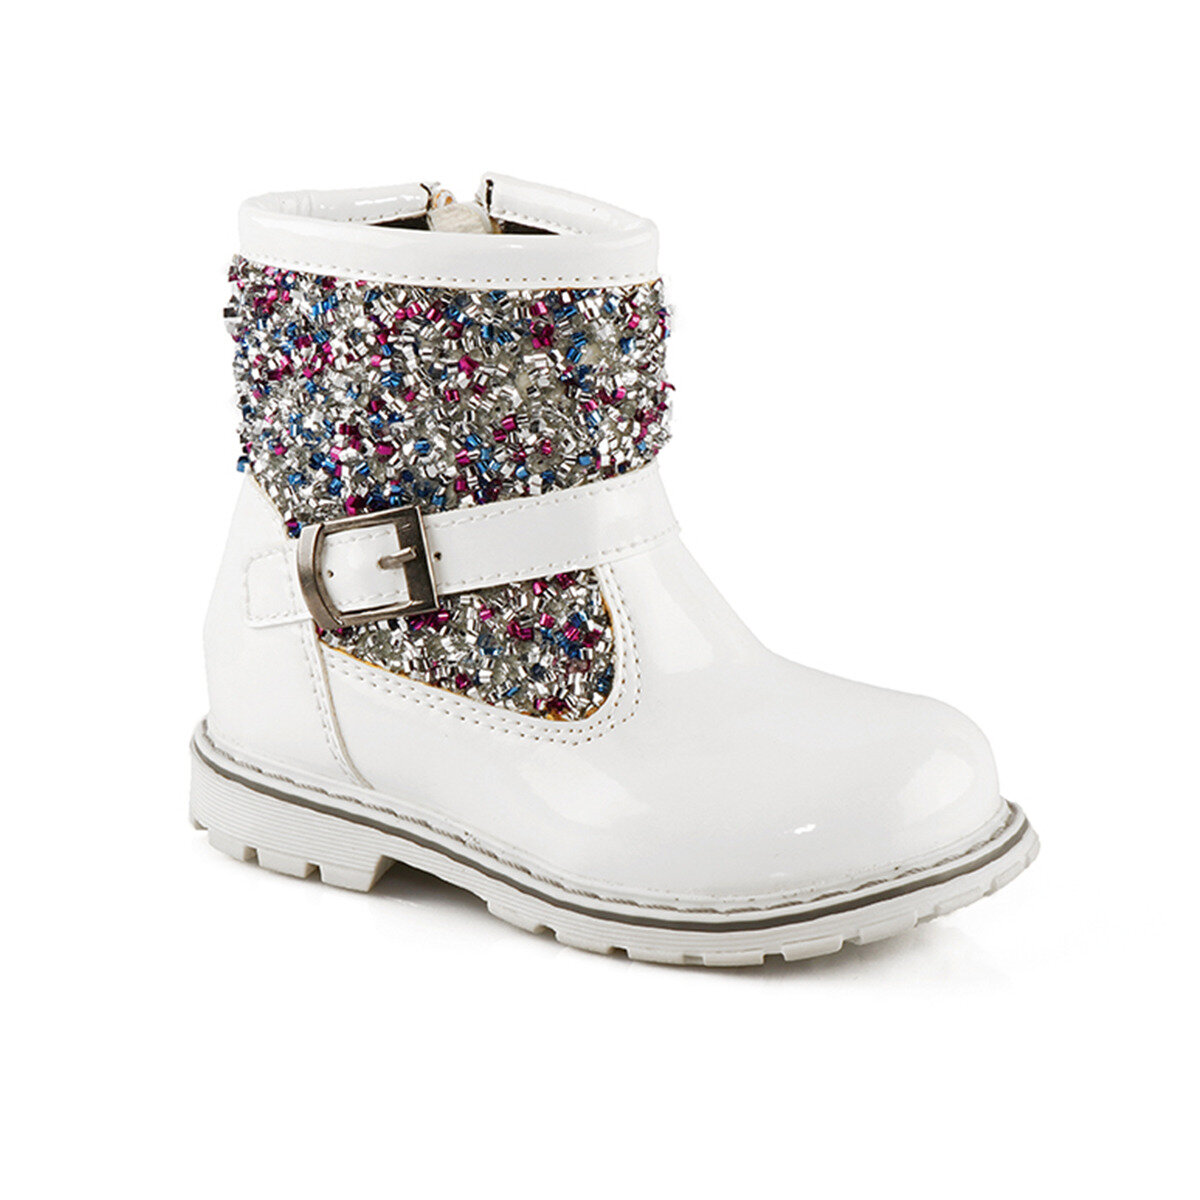 FLO 312. Y.292 BB White Female Child Boots VICCO